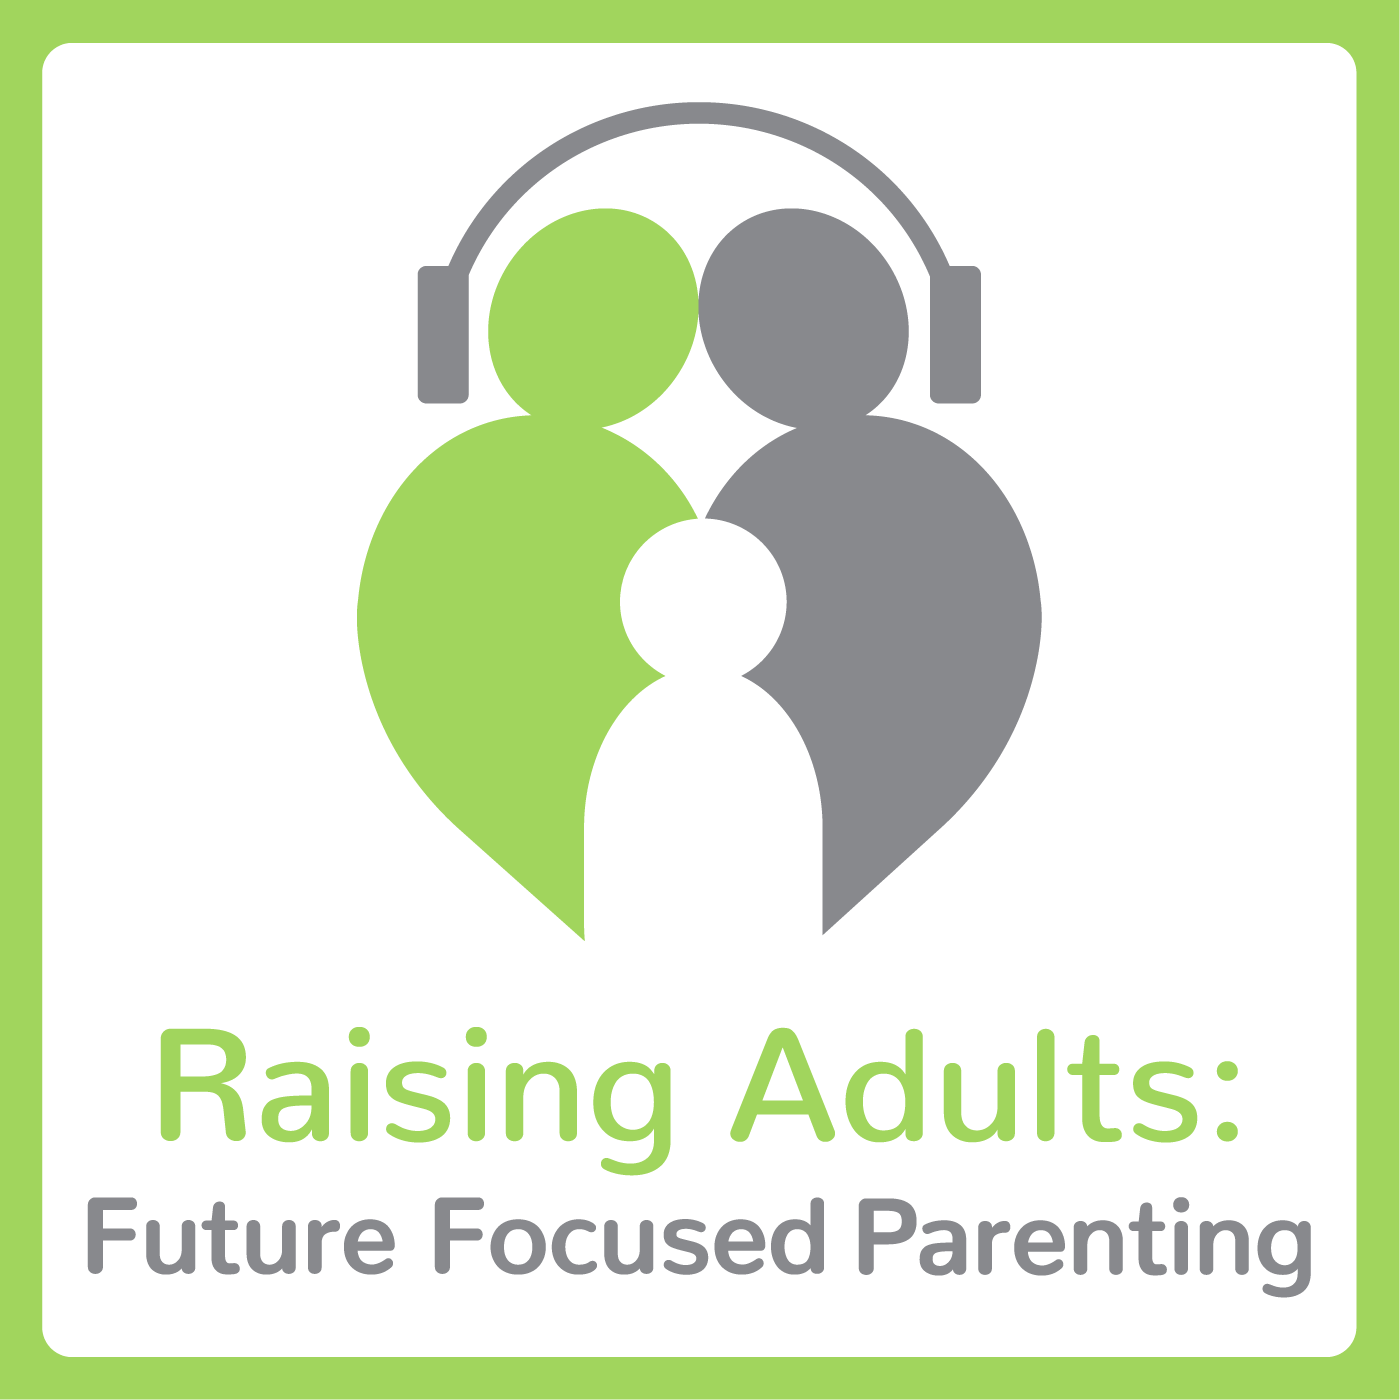 Parenting Kids With ADHD with Dr. Heather Maguire of Prism Behavior show art